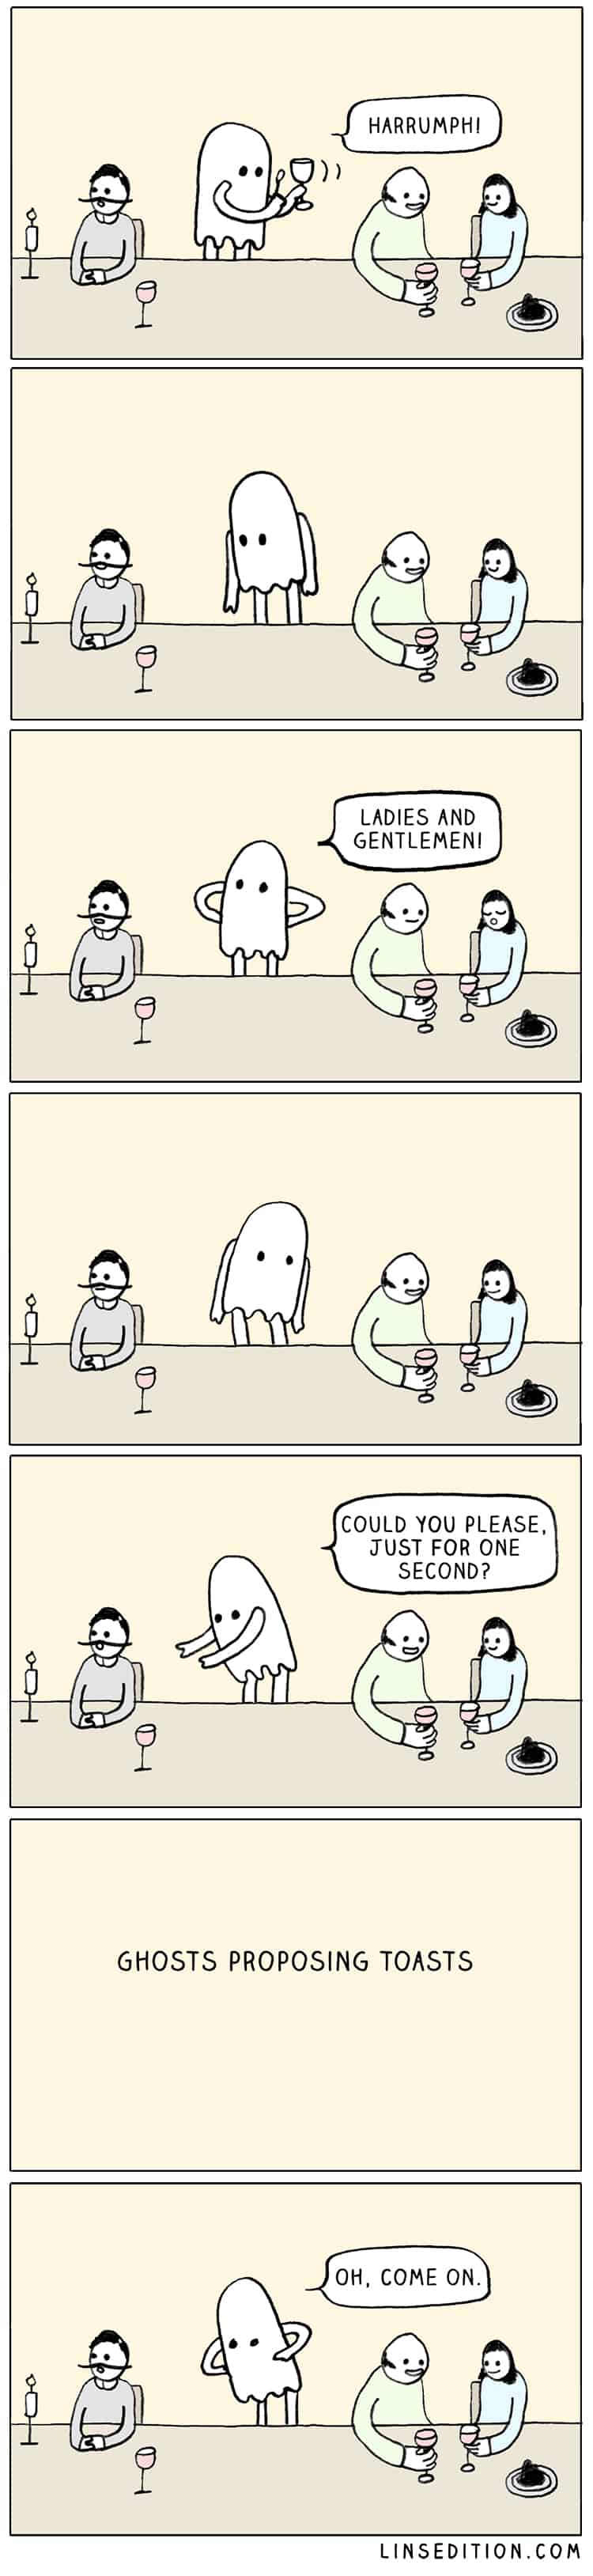 Ghosts Proposing Toasts